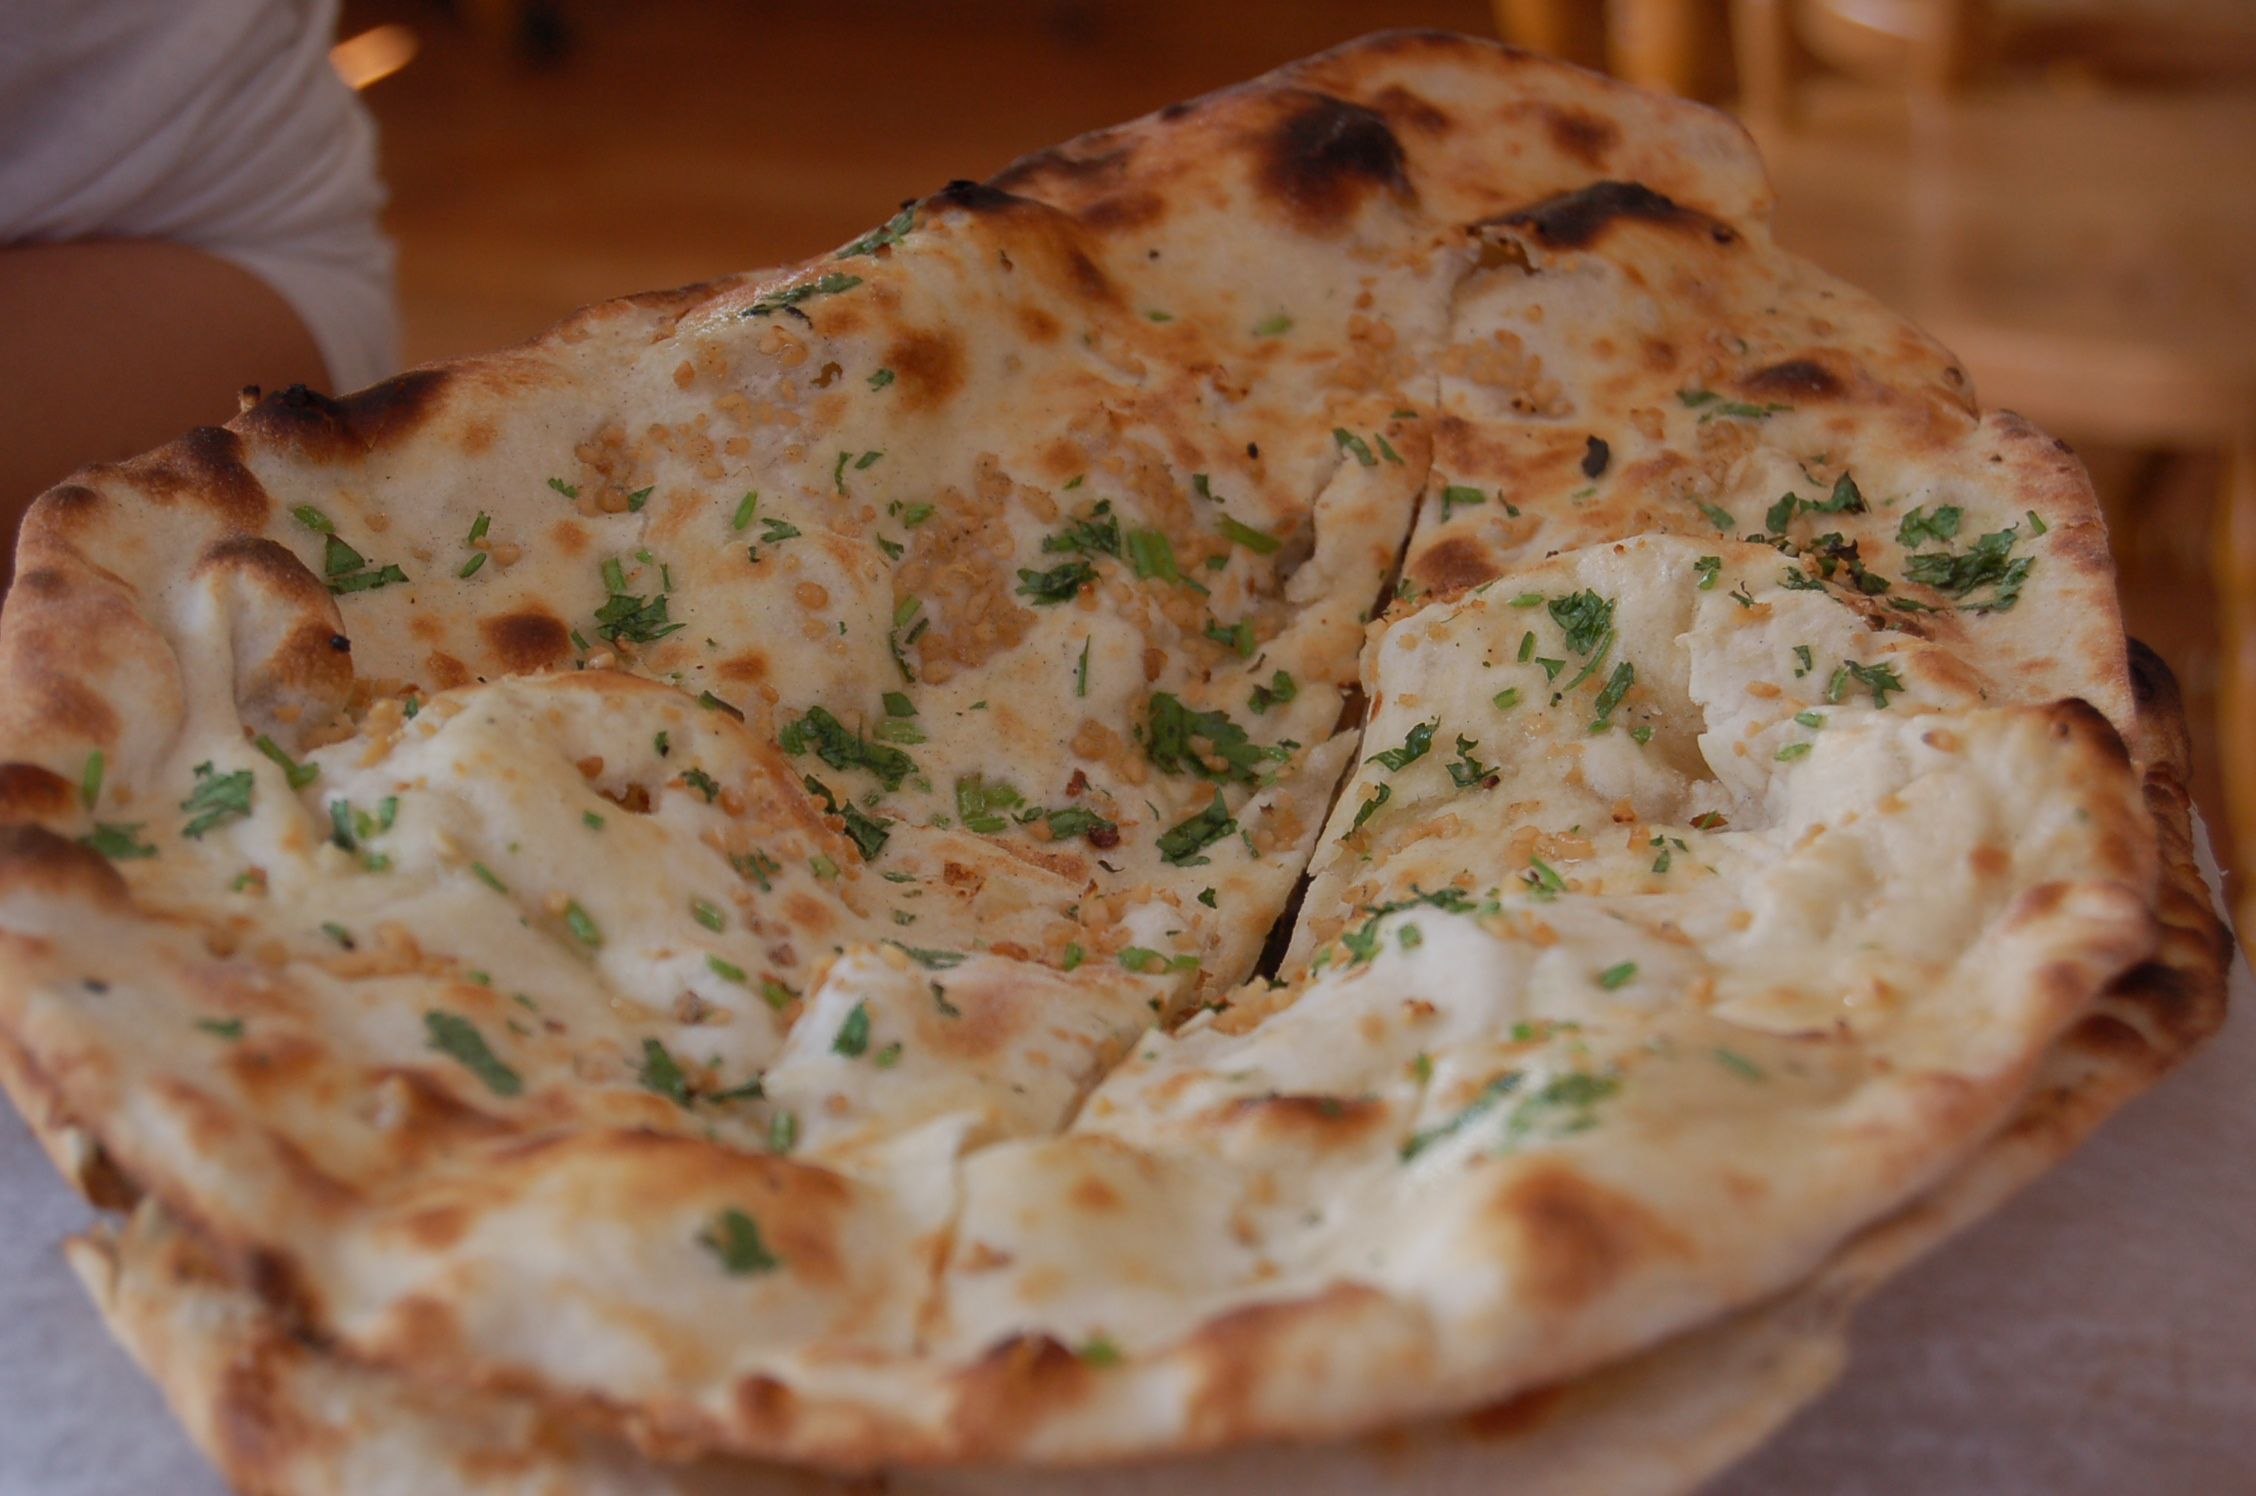 Naan with seasoning